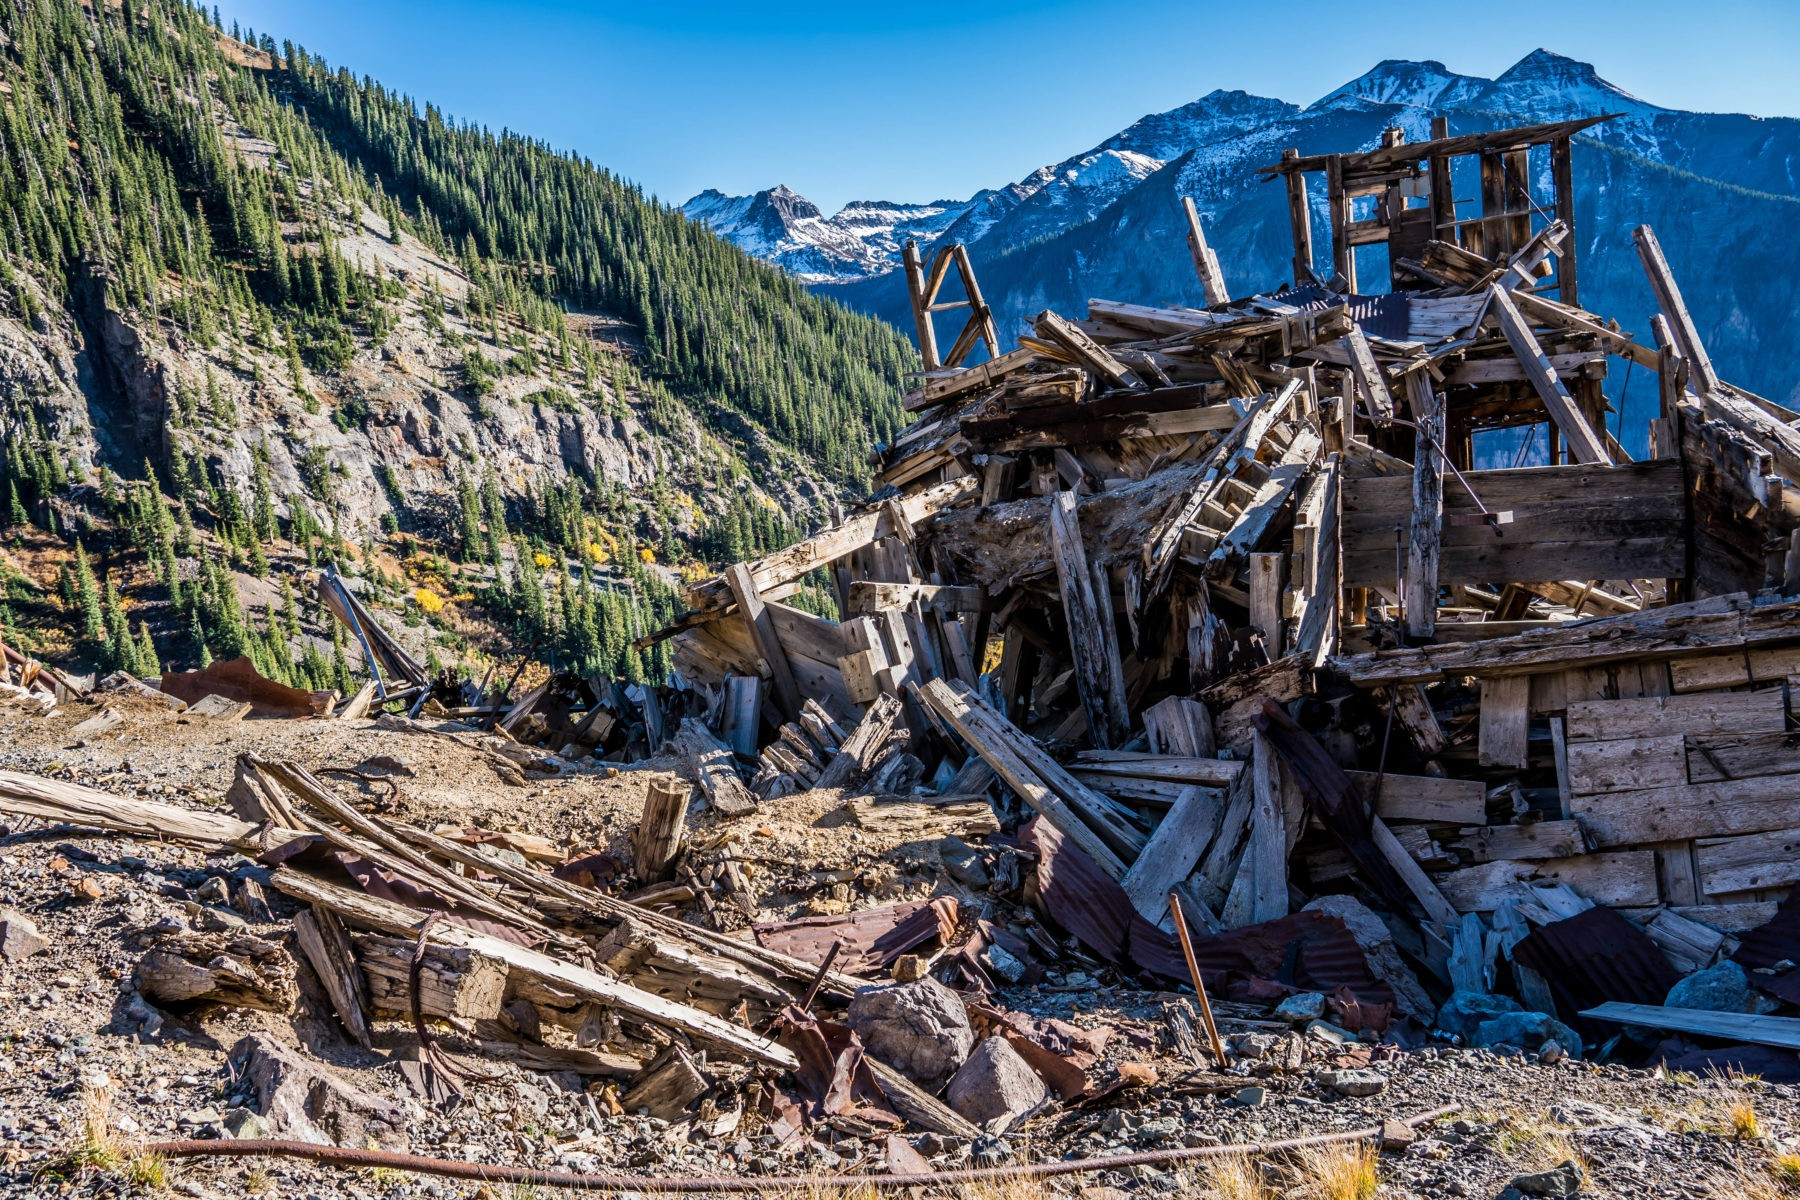 Remains of the Tomboy Smuggler-Union Mine Complex at the Bullion Tunnel on the north side of the Telluride Valley